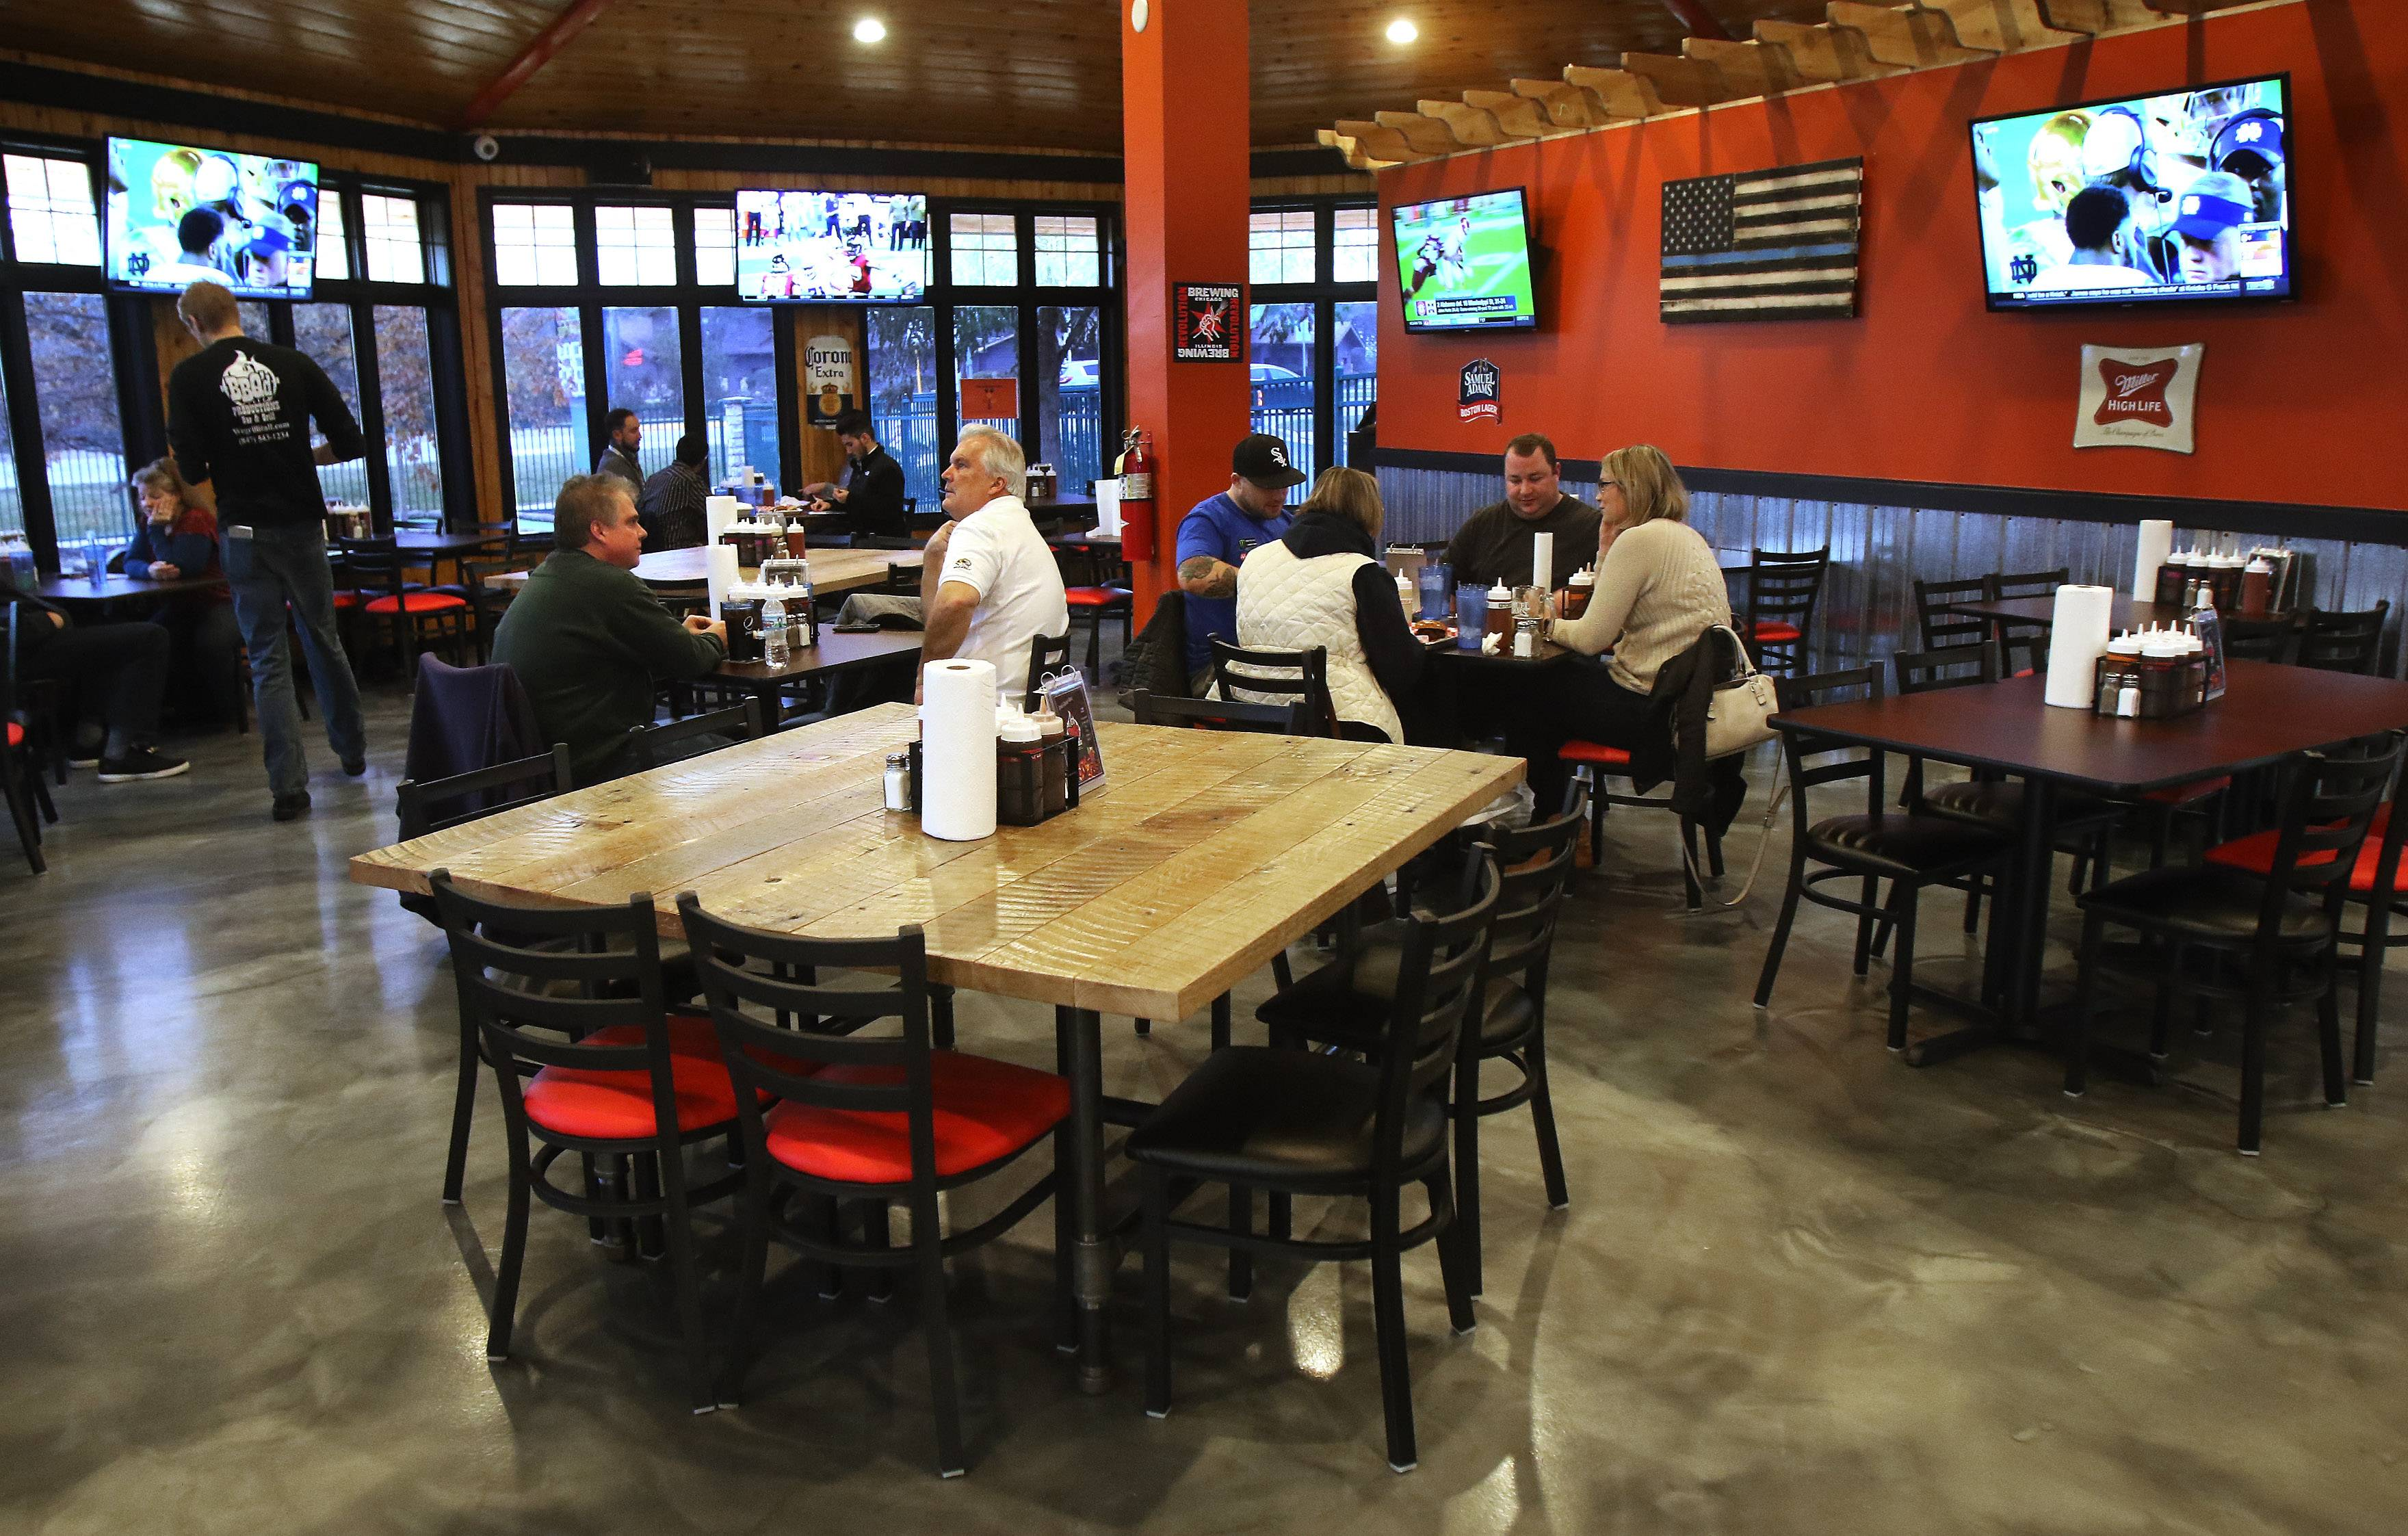 Diners at BBQ'd Productions Bar & Grill in Lake Zurich will soon be able to use the five video gambling machines, after village trustees in Monday approved their use in the restaurant.